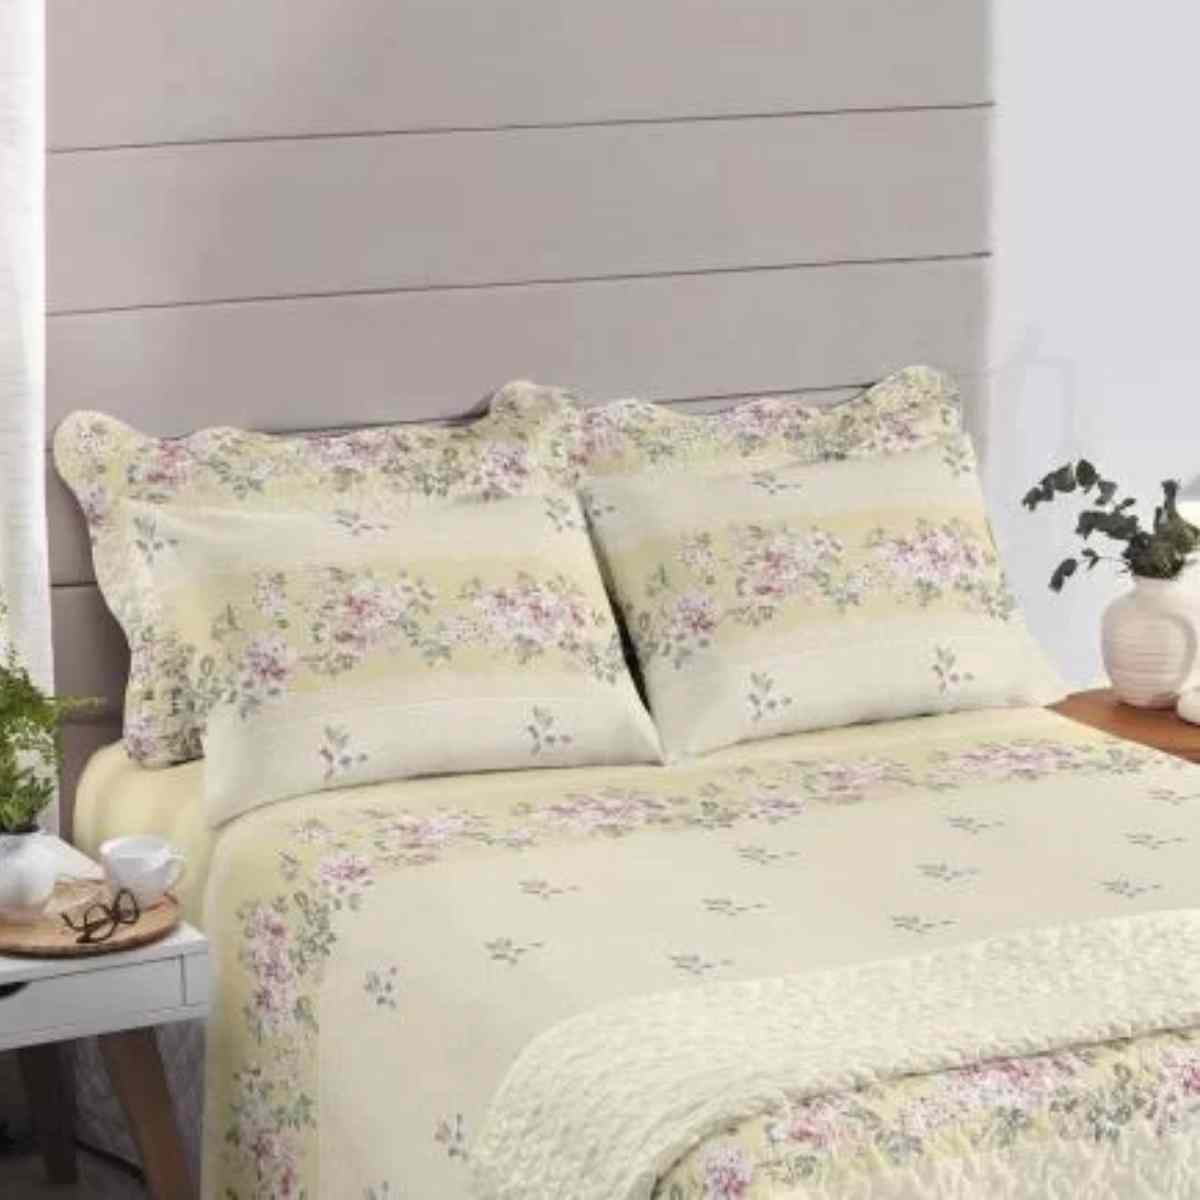 Jg Cama Royal Queen 4 Pcs LUARA